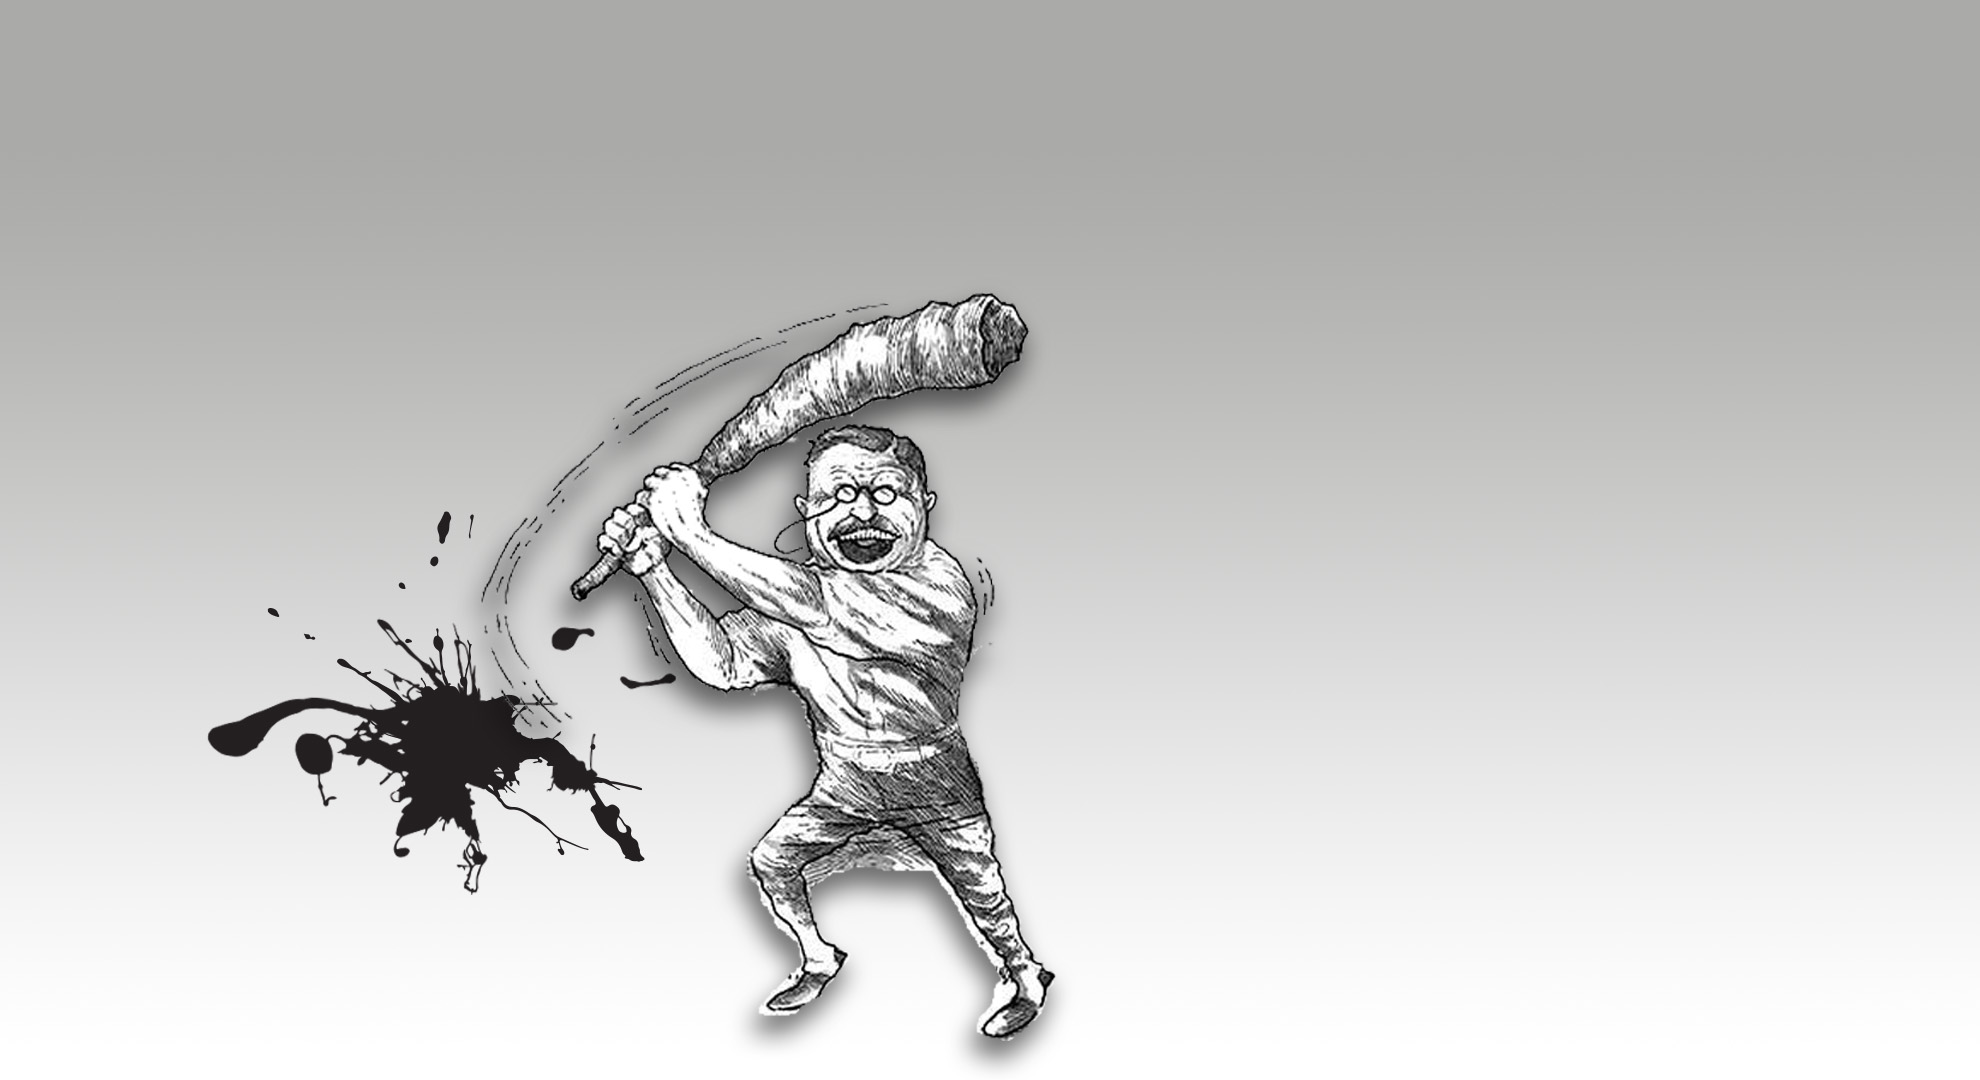 Graphic image of a caricature of Teddy Roosevelt swinging a baseball bat